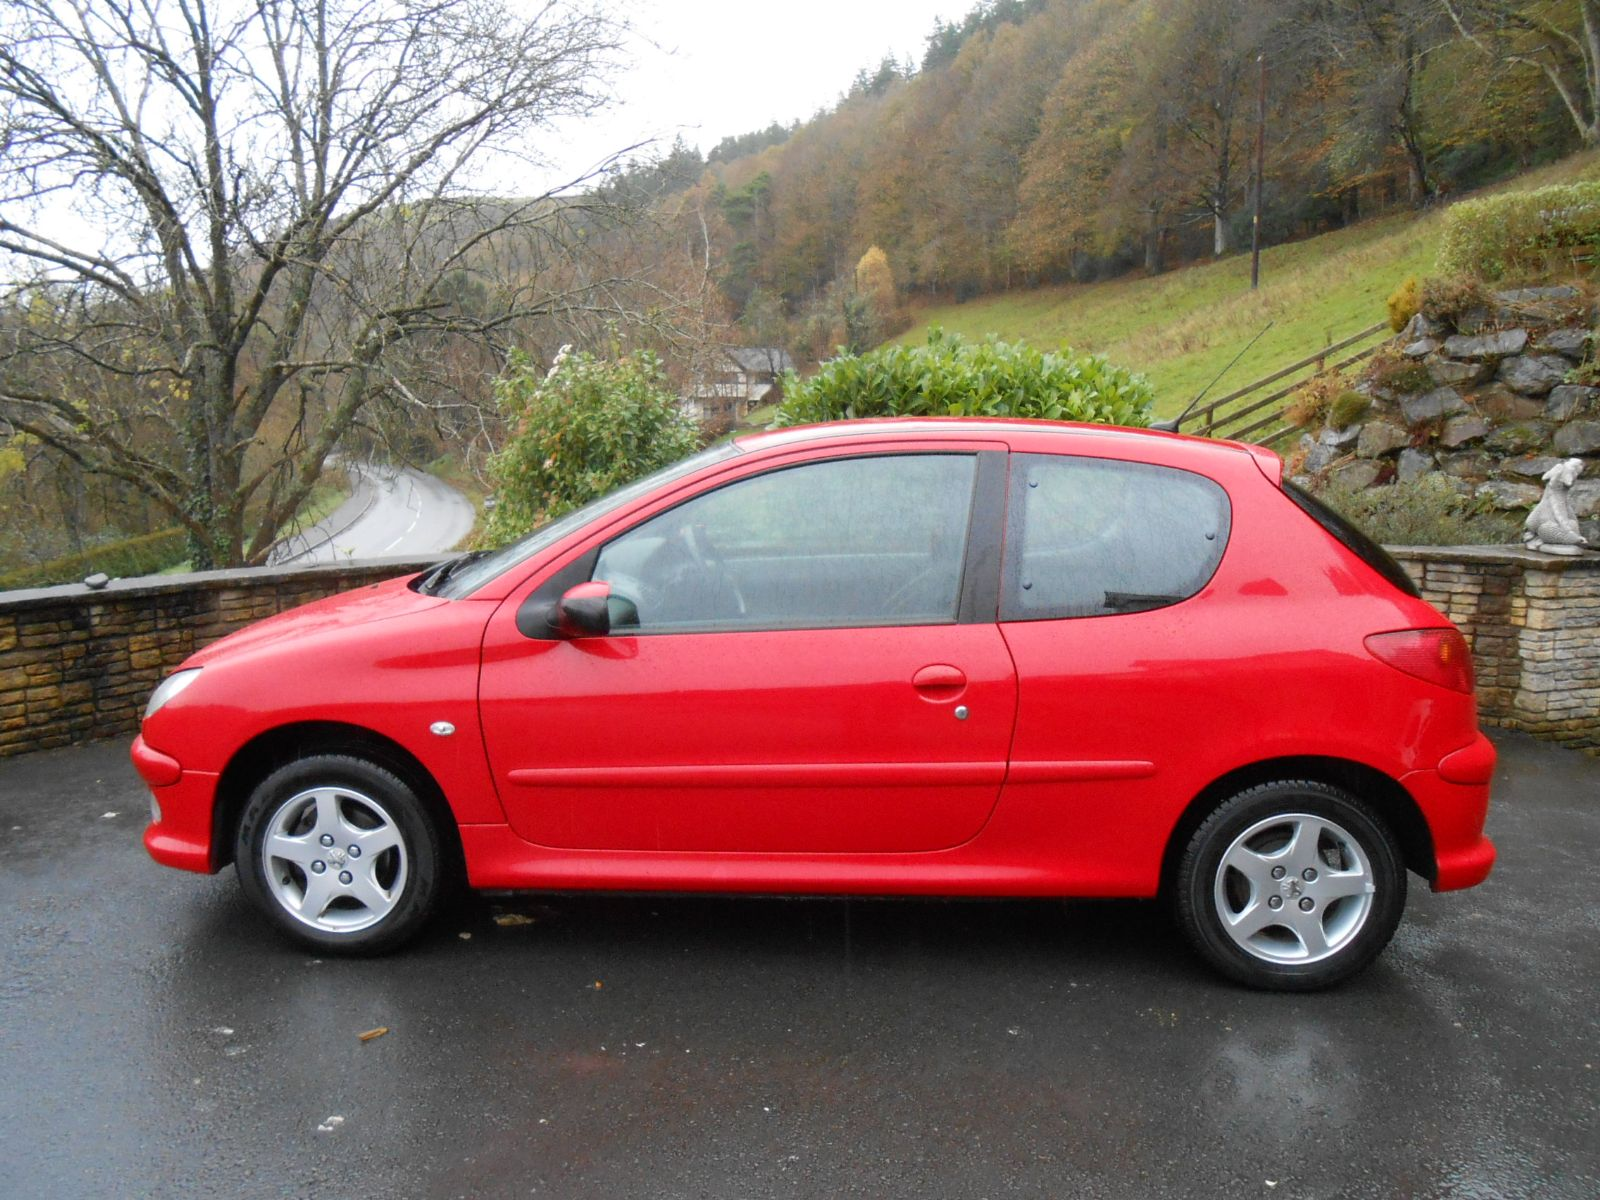 Nearly New Cars For Sale  Finance